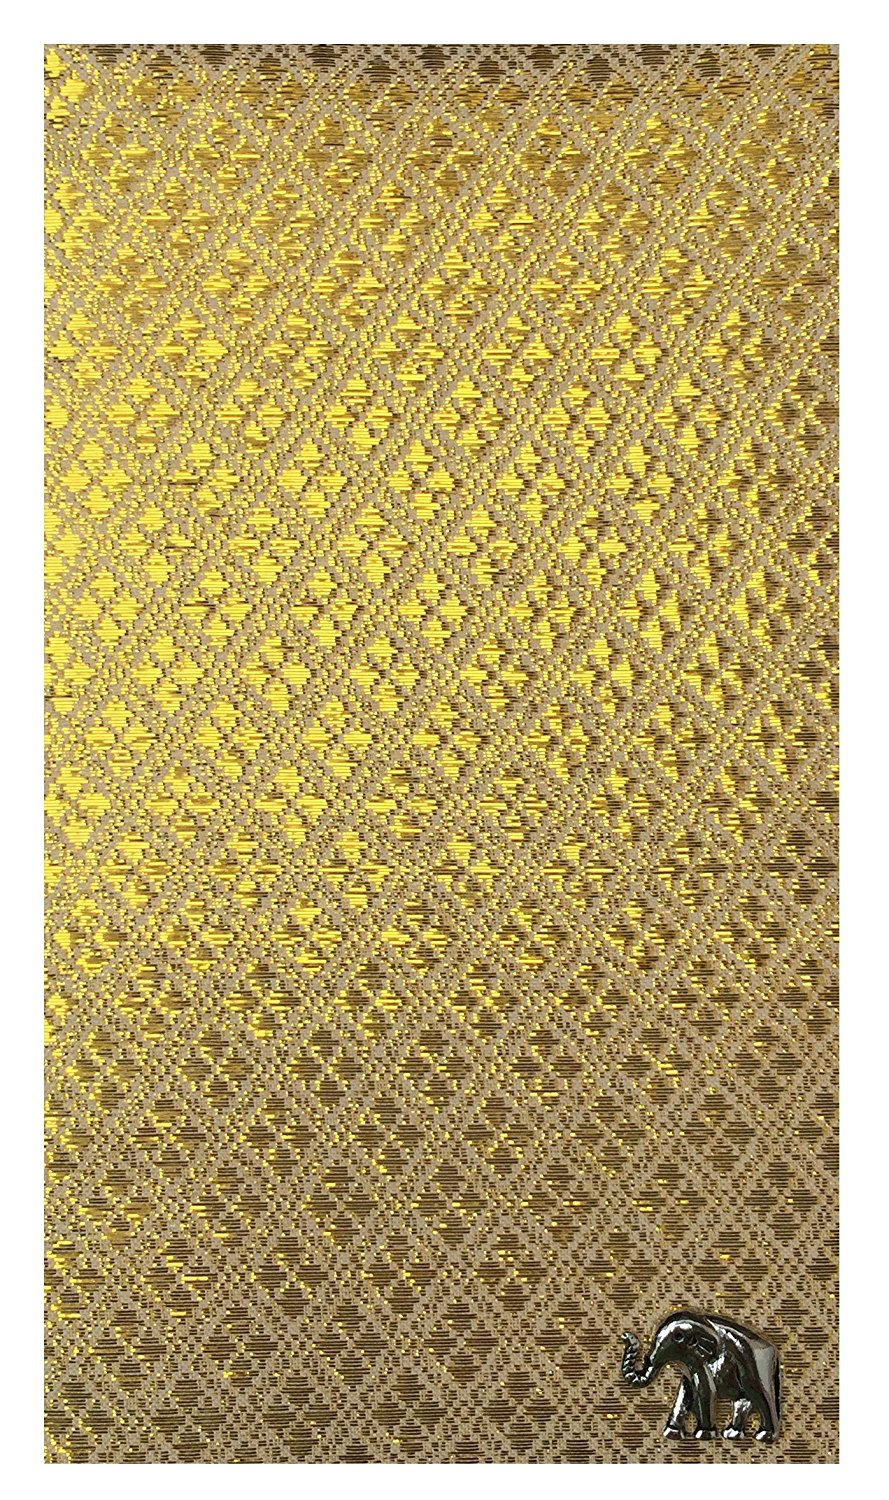 Cheap Gold Check Fabric, find Gold Check Fabric deals on line at ...